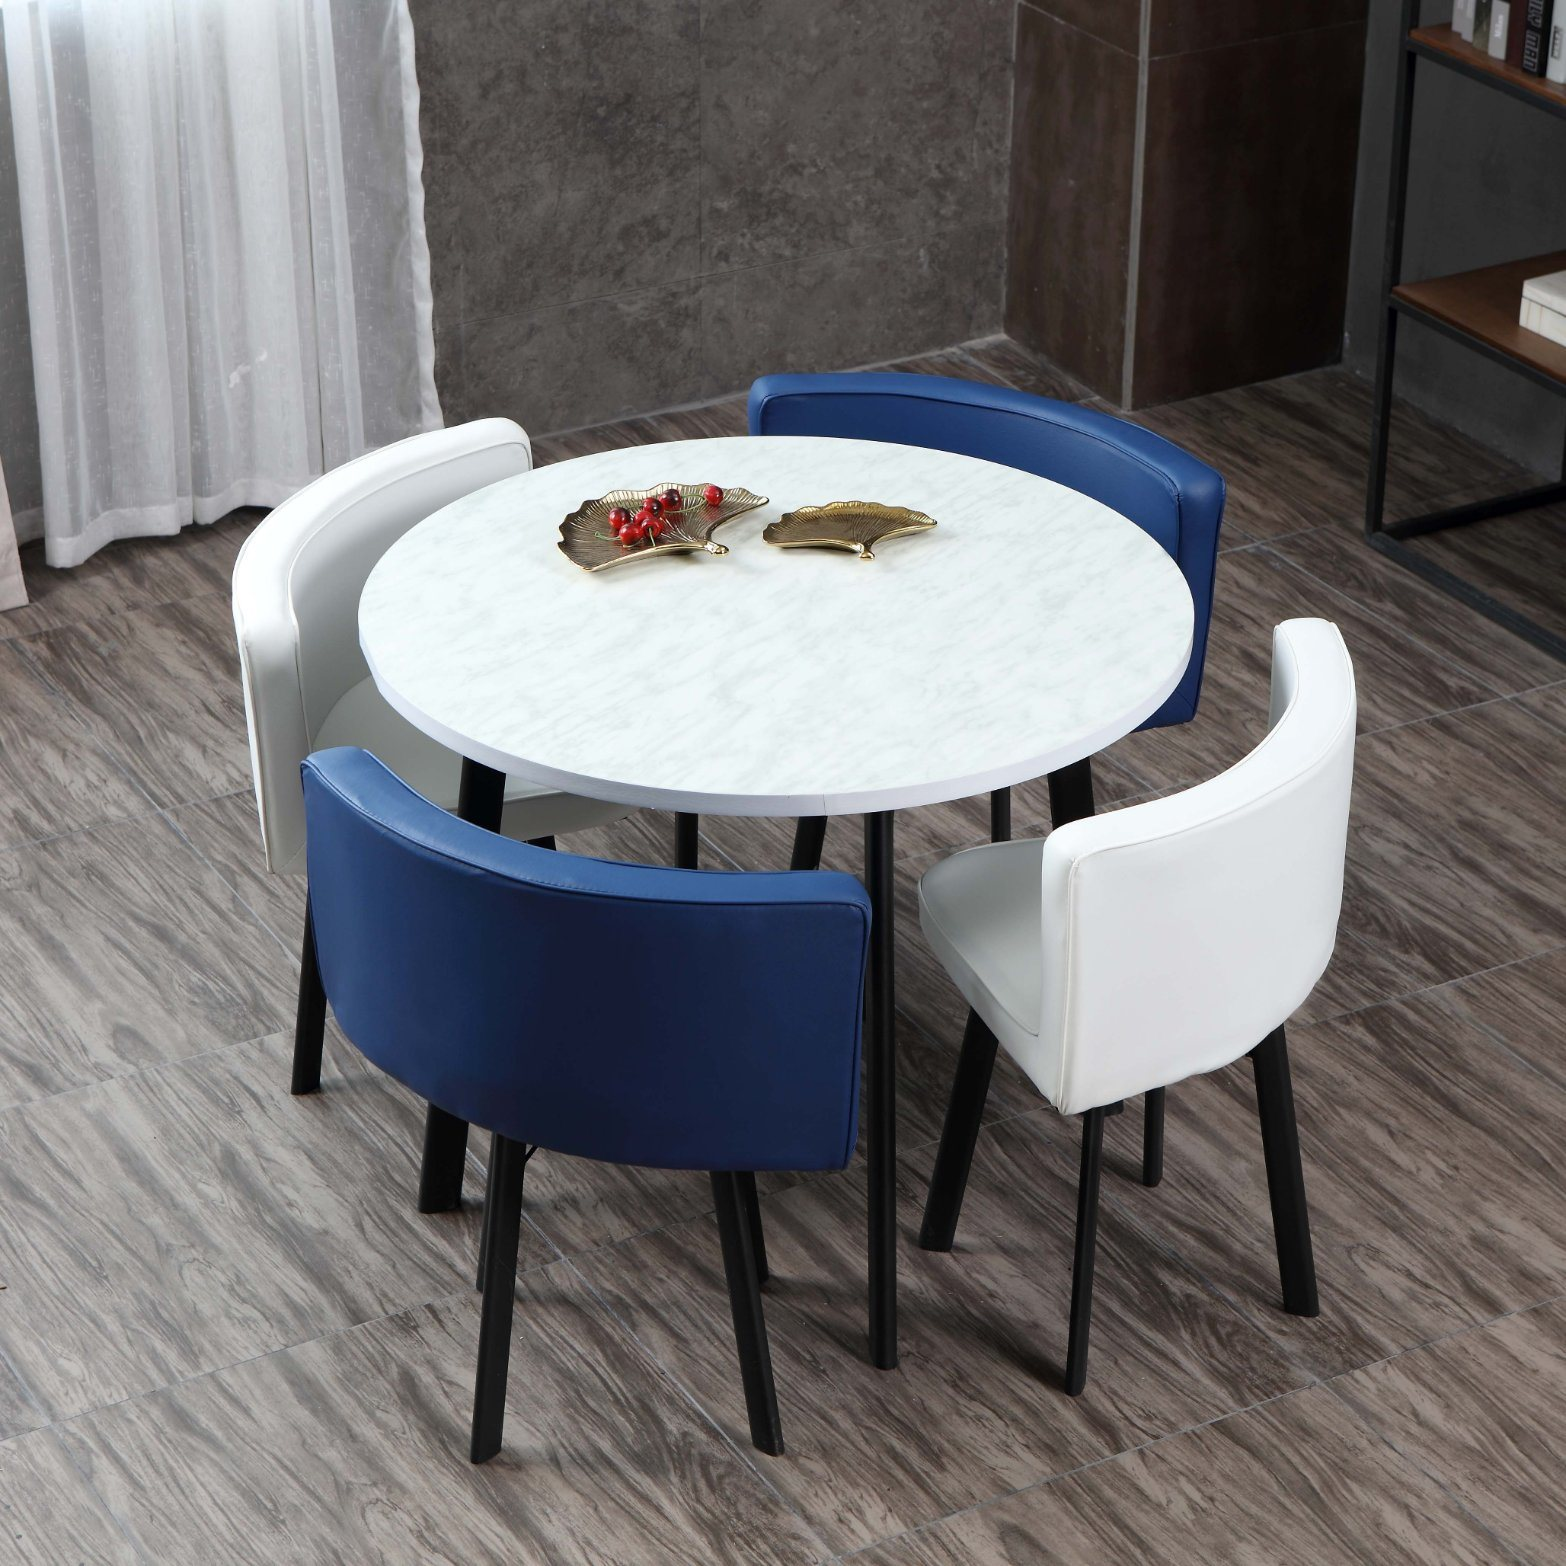 [Hot Item] Hot Sale Home Furniture Round Table Set with Four Chairs Dining  Table Chair Set Wooden Commerical Dining Room Chair and Desk